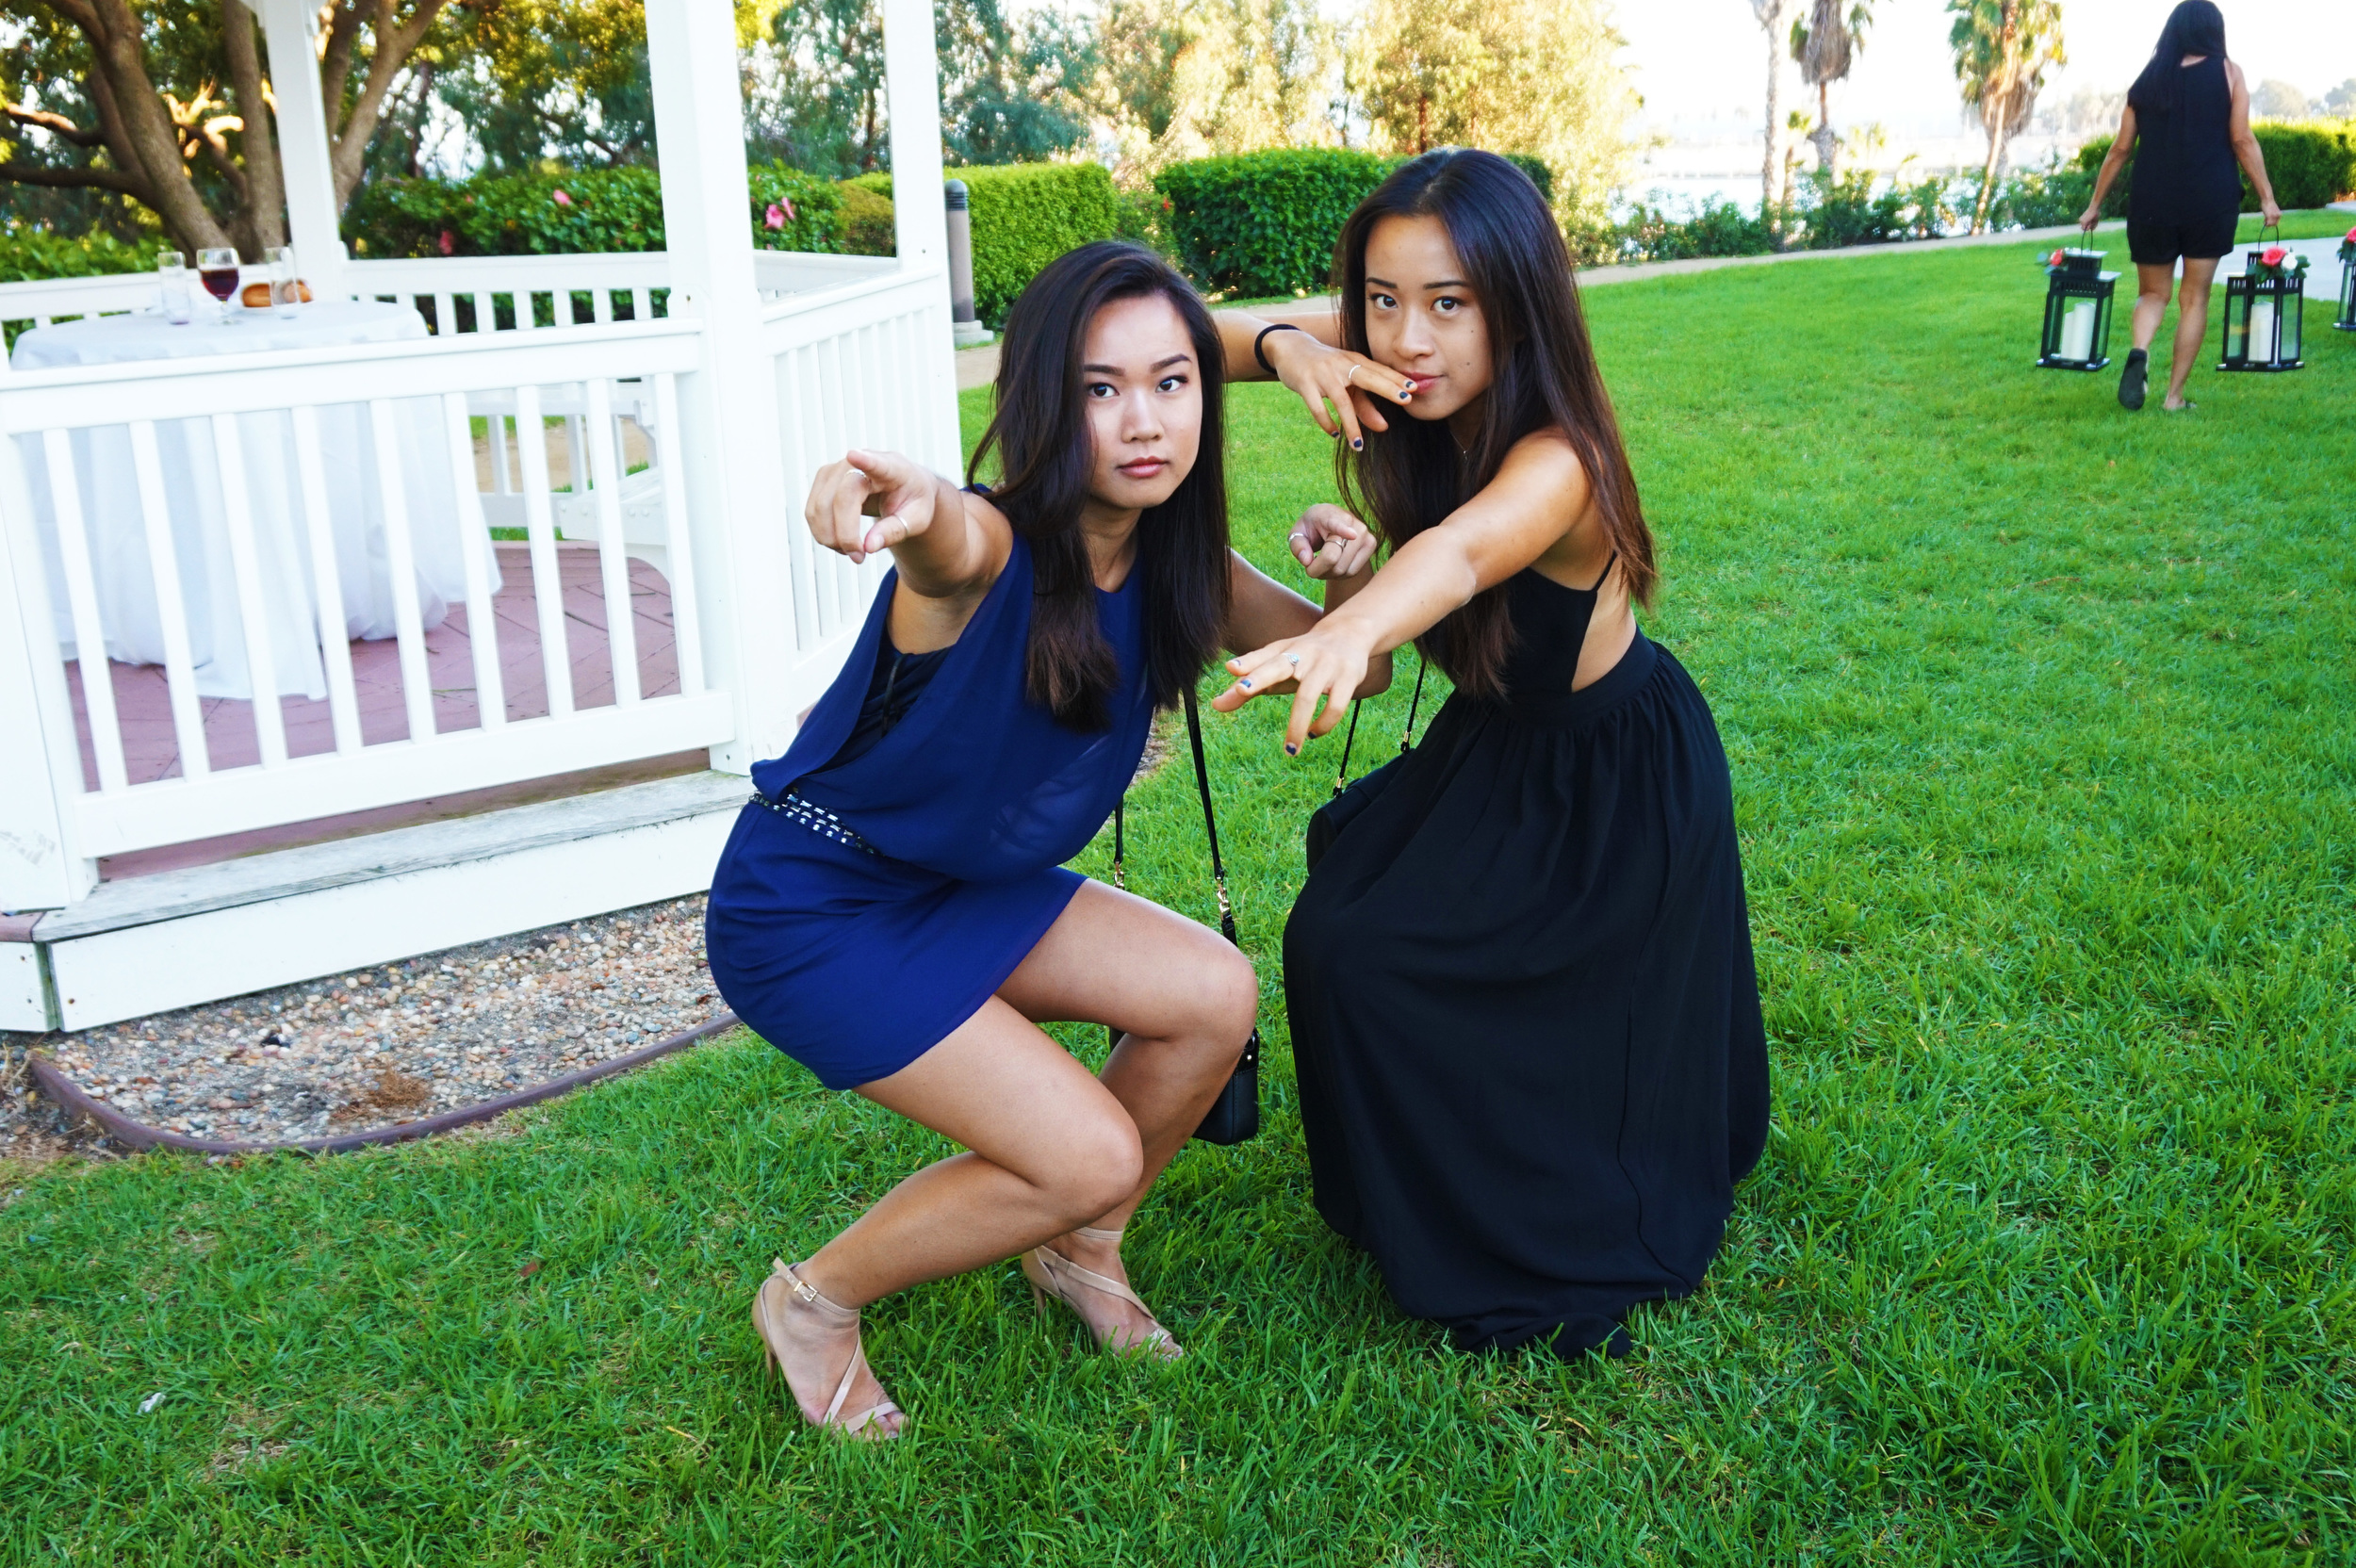 2CHANGZ mixtape dropping soon (I just cringed at my own joke but still worth it)